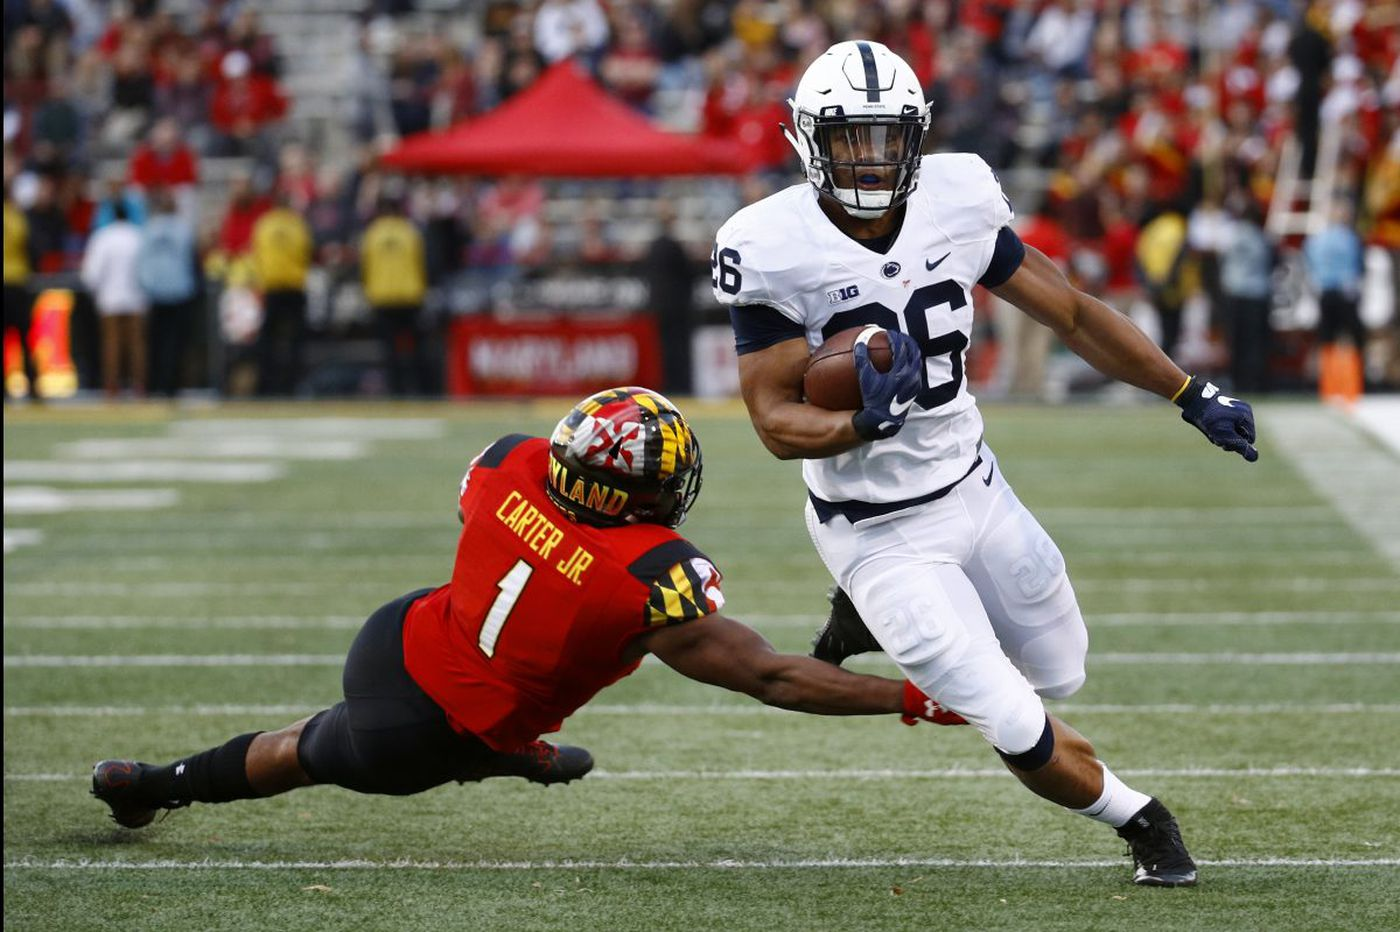 Penn State's Saquon Barkley not among Heisman Trophy finalists